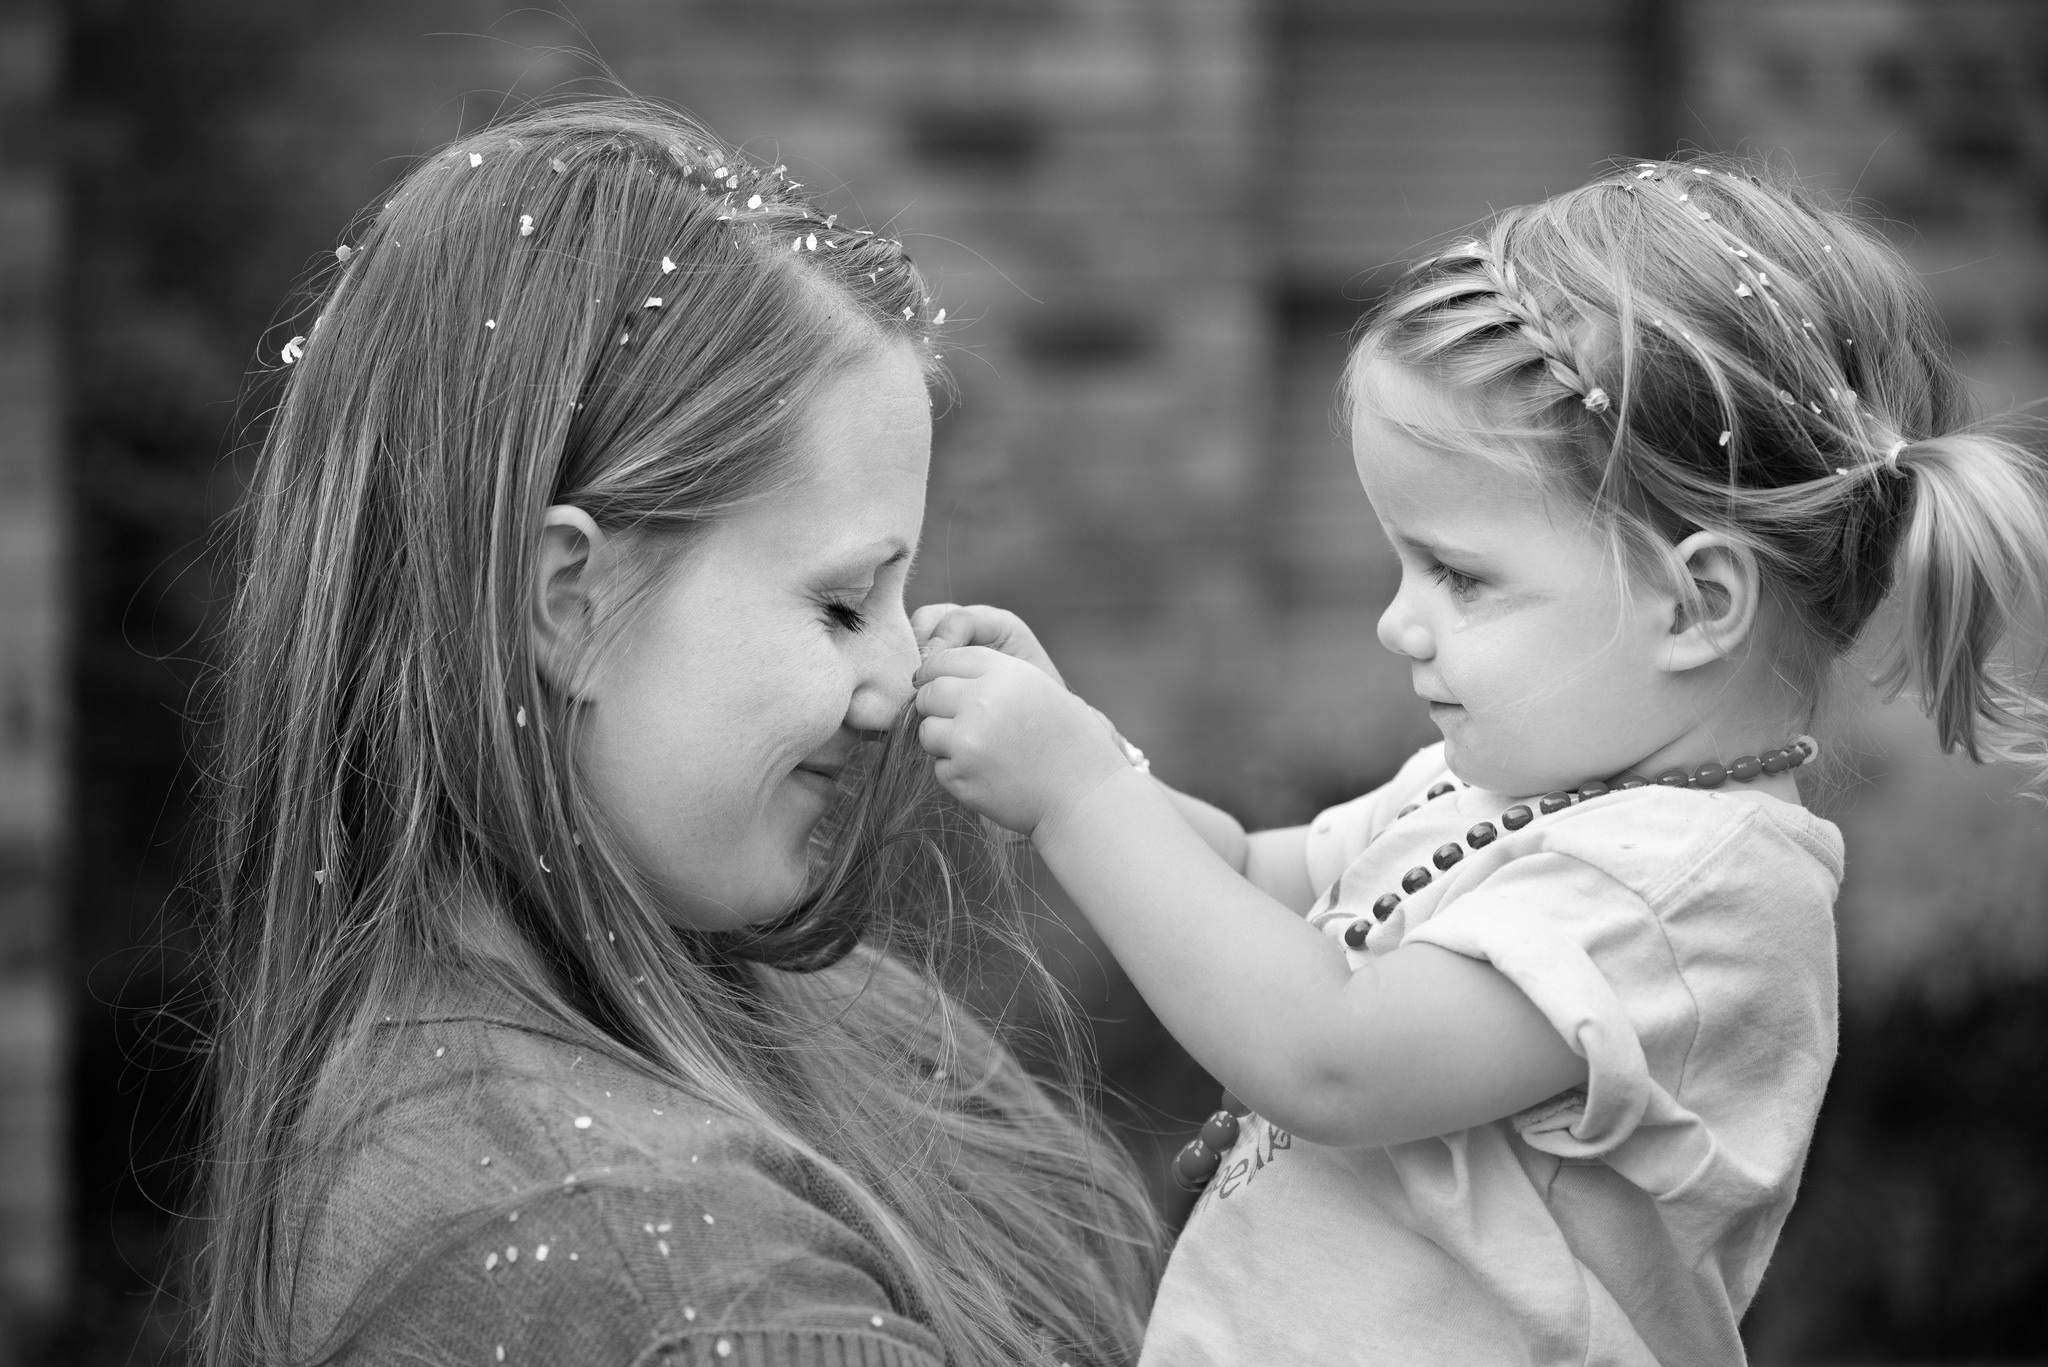 woman holding young girl who is pulling her nose